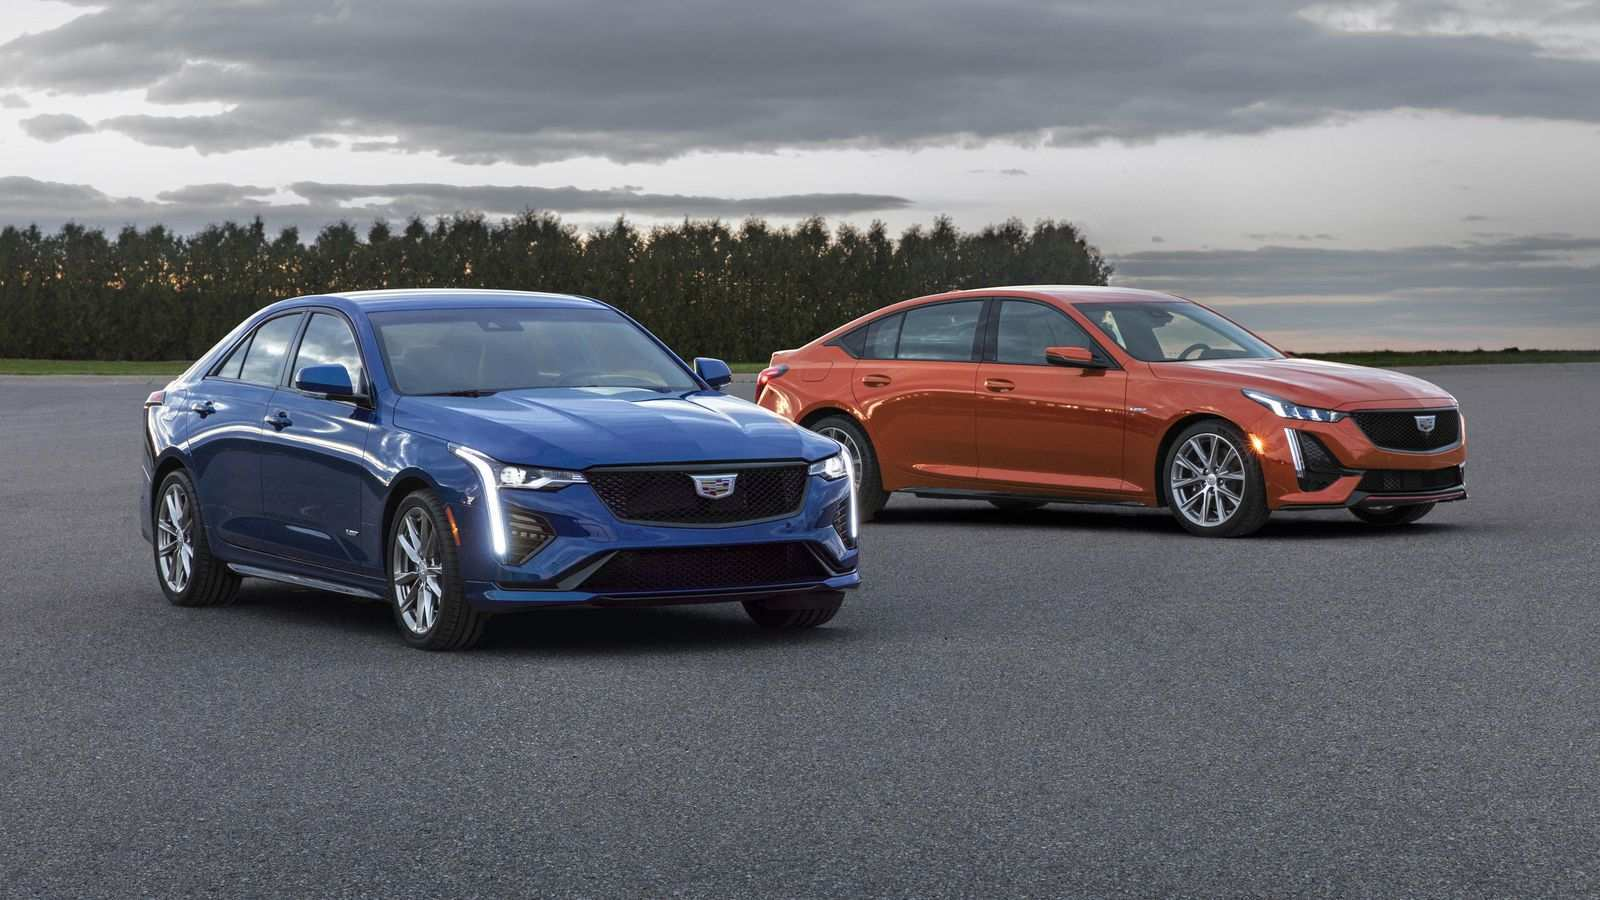 72 All New 2020 Cadillac CTS V Review And Release Date